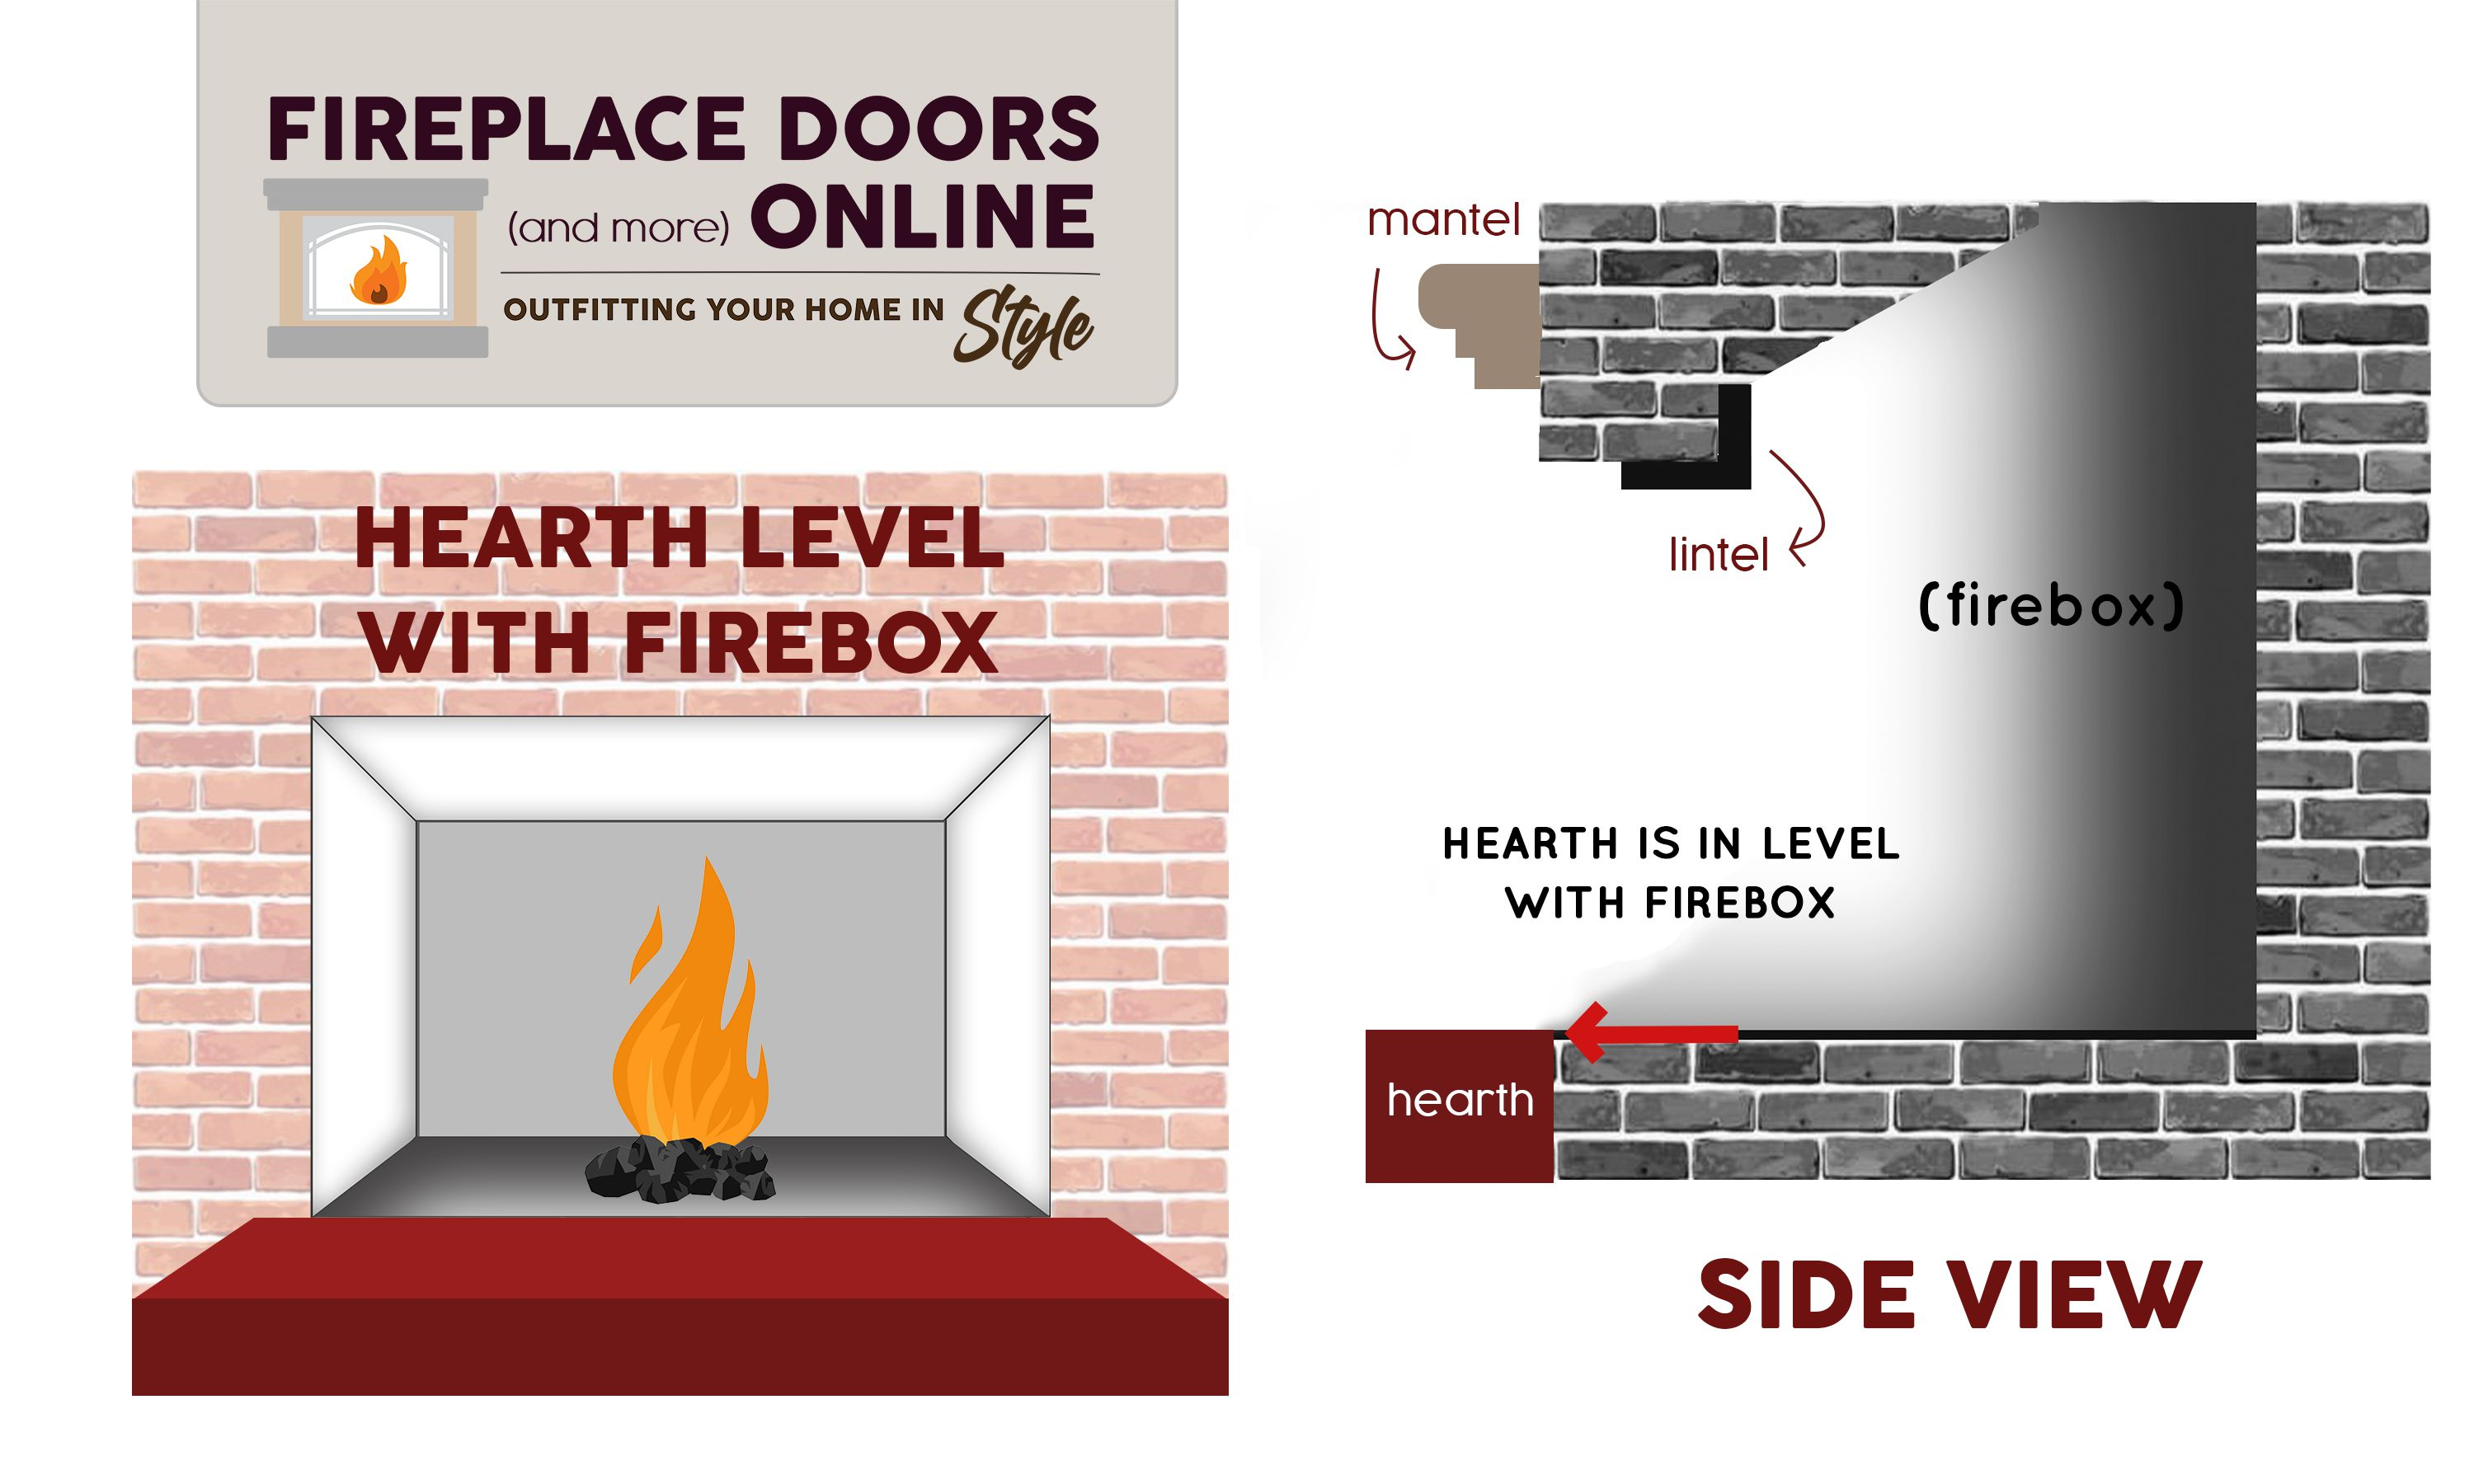 Hearth Level with Firebox